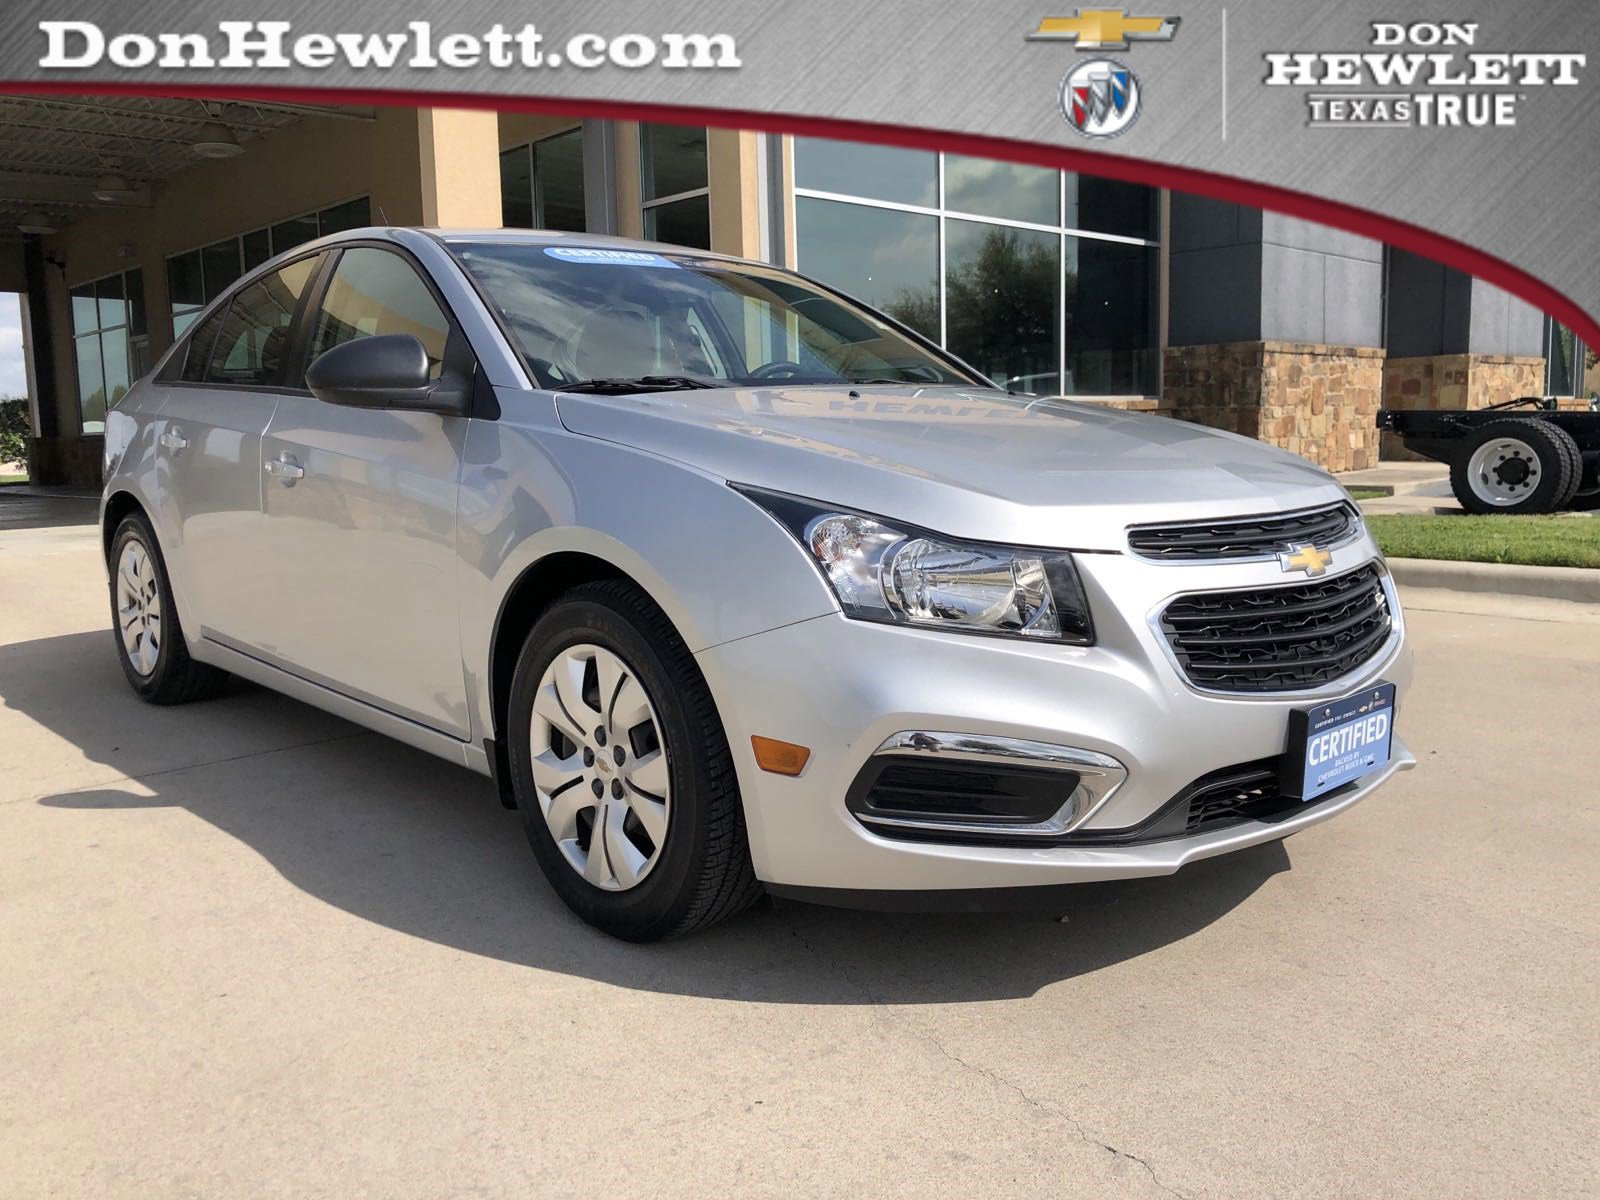 2016 Chevrolet Cruze Limited LS Sedan image